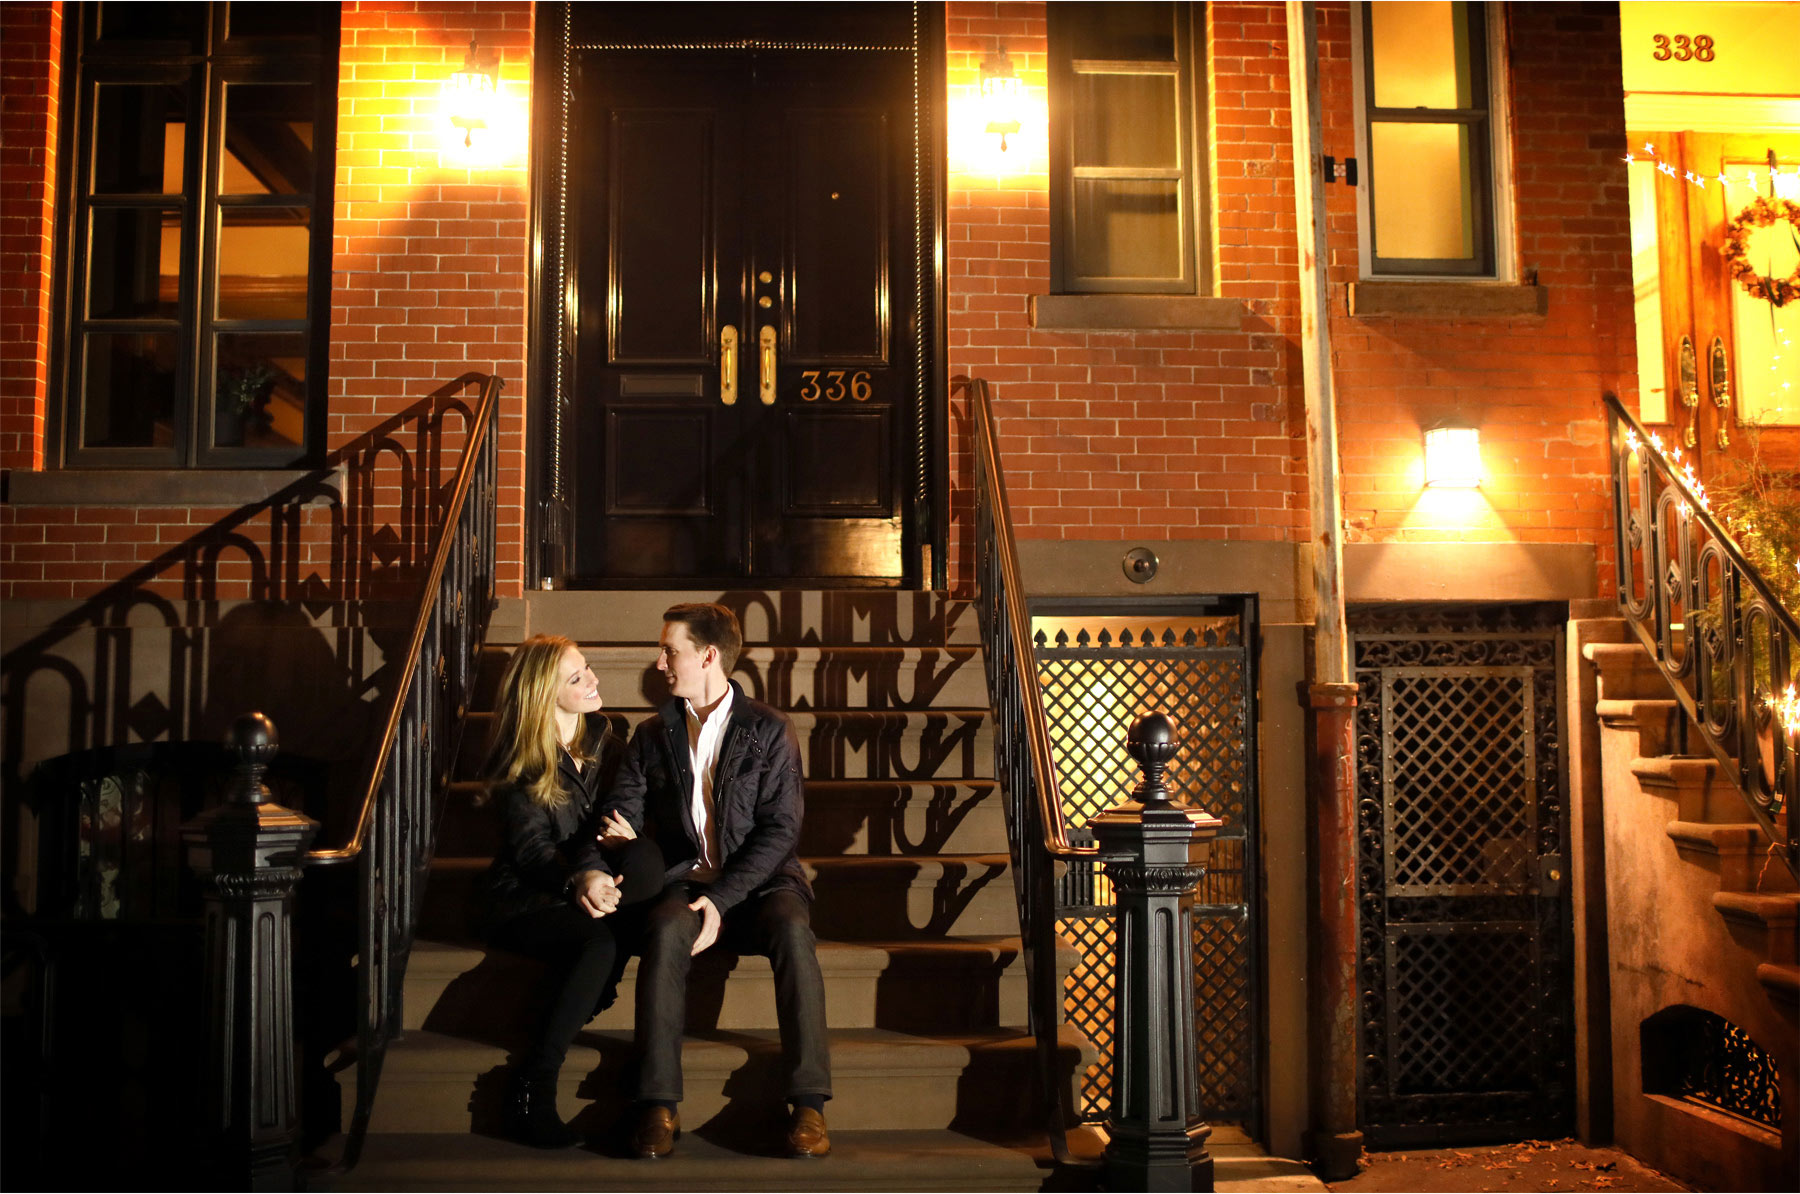 05-New-York-City-Wedding-Photographer-by-Andrew-Vick-Photography-Winter-Engagement-Bride-Groom-Night-Apartment-Stoop-Emily-and-Jon.jpg